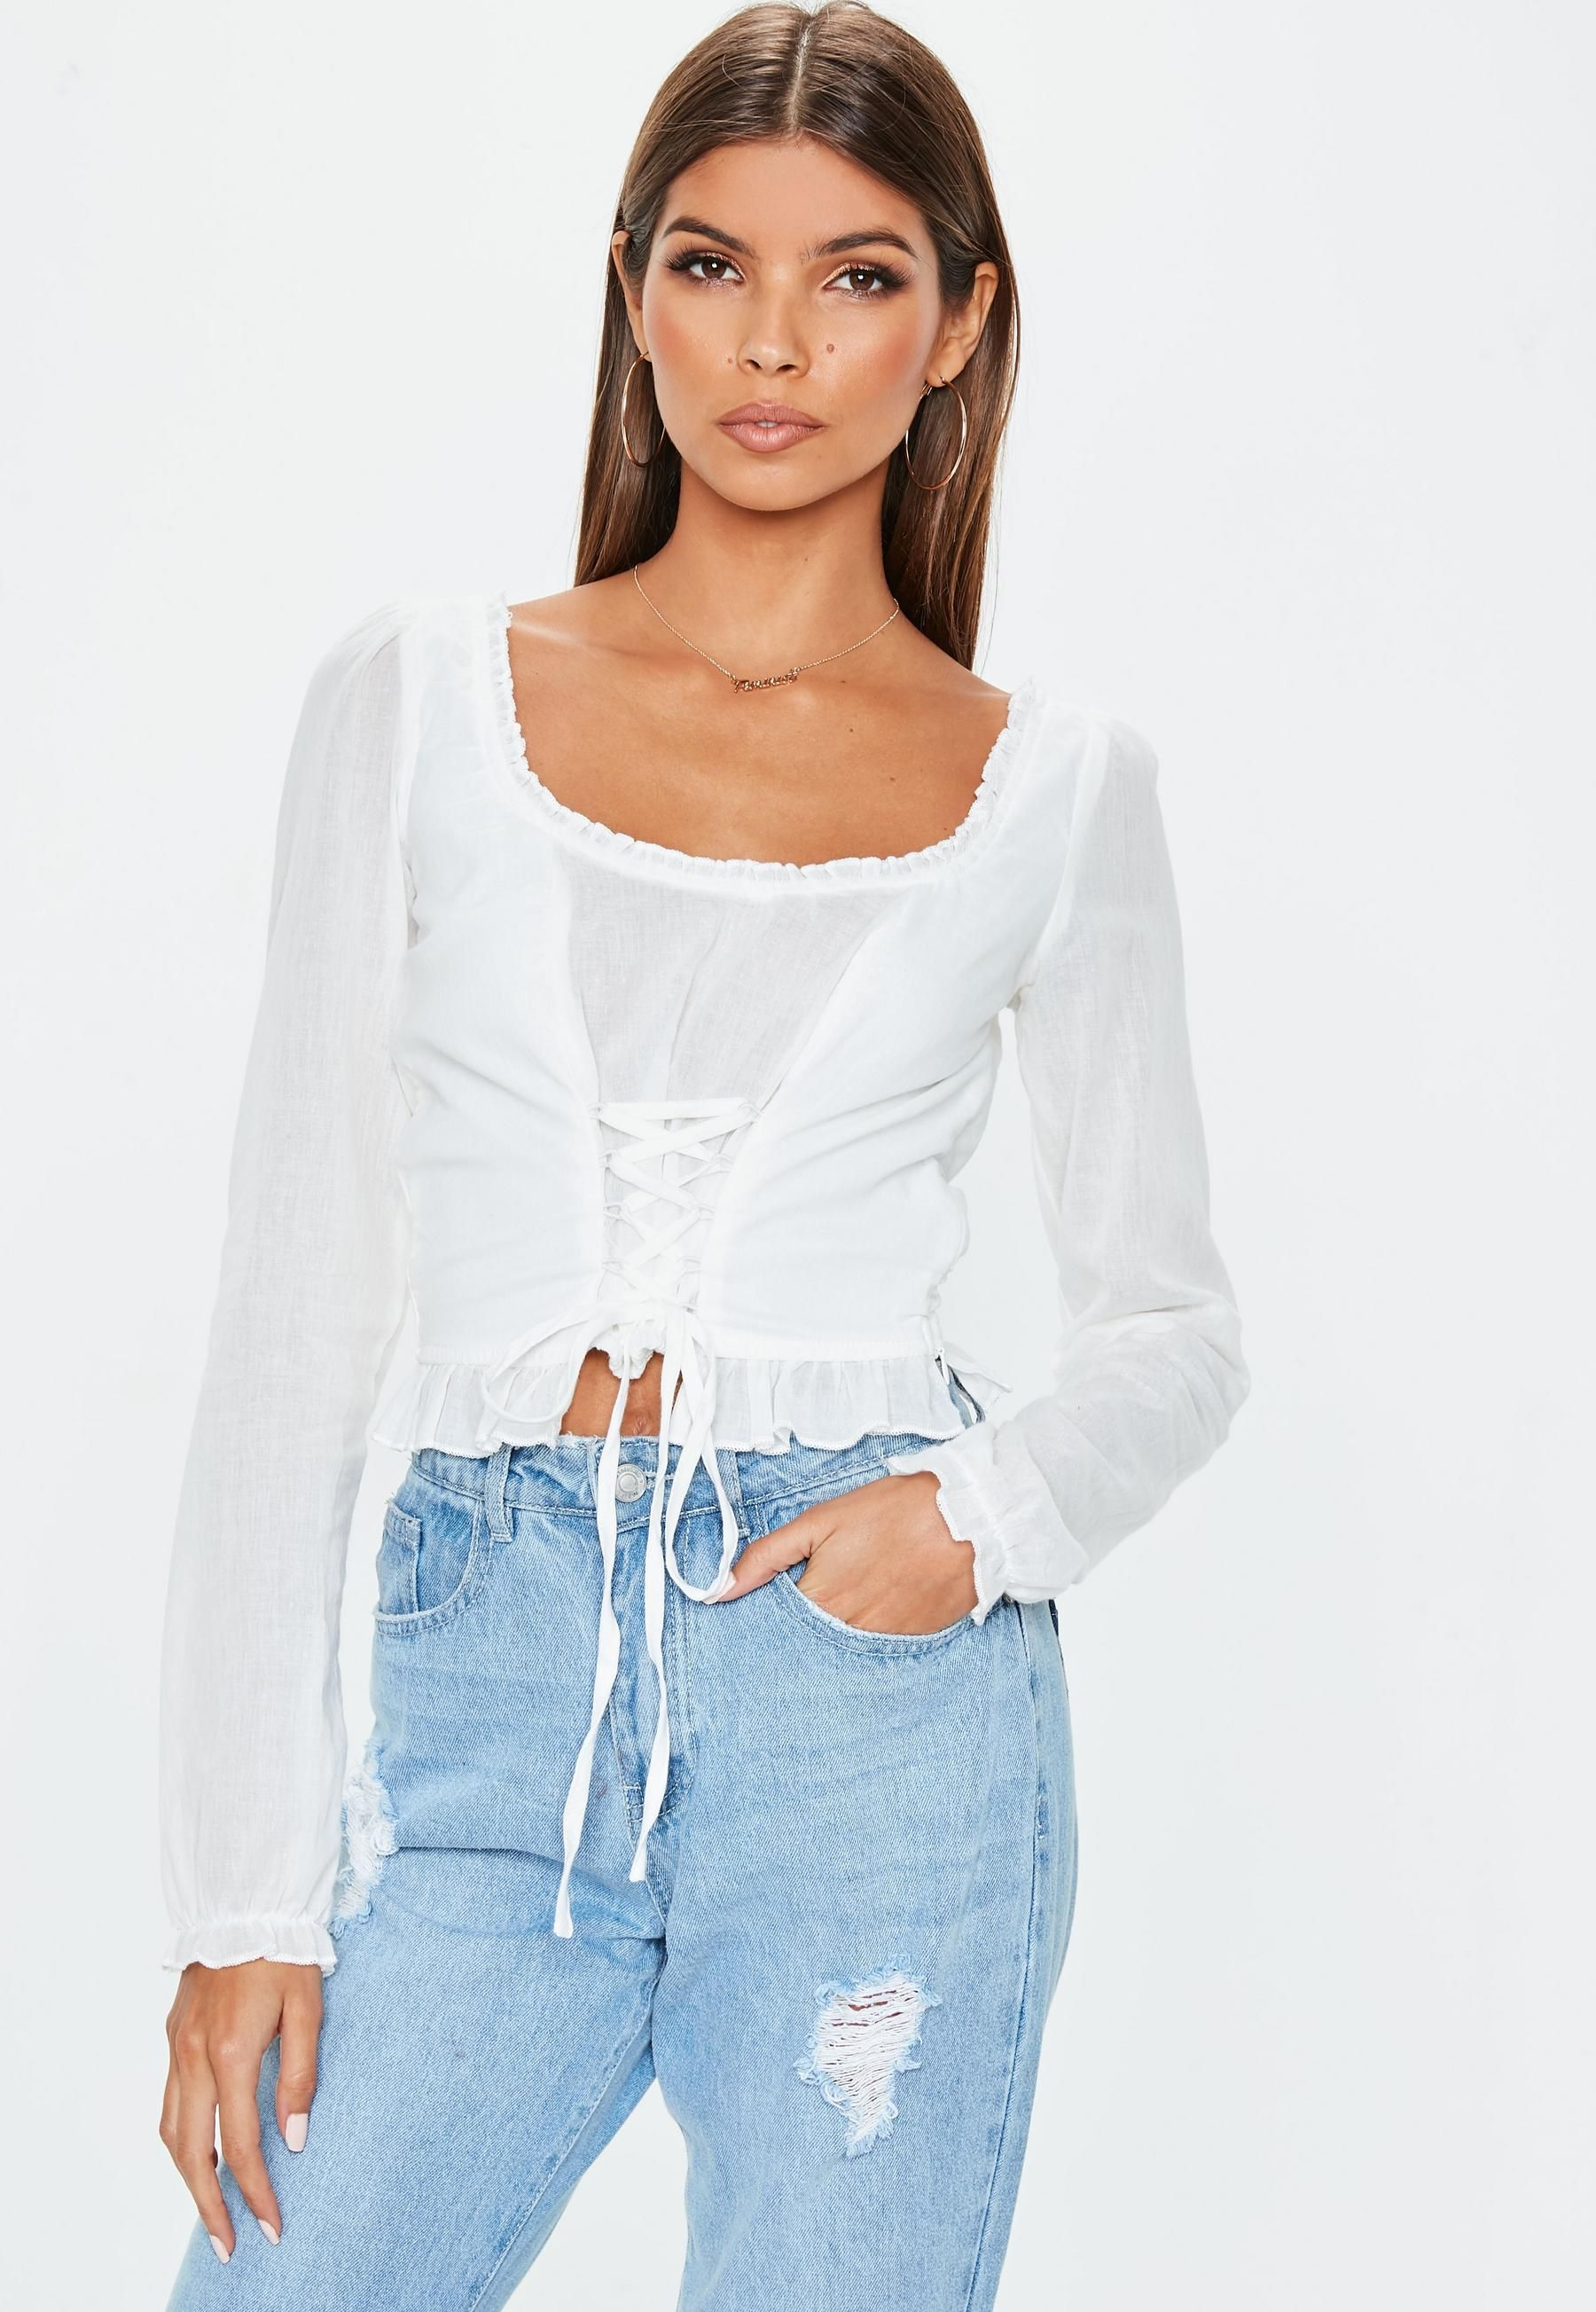 find Womens Long Sleeve Top in Lace-Up Ribbed Knit Brand